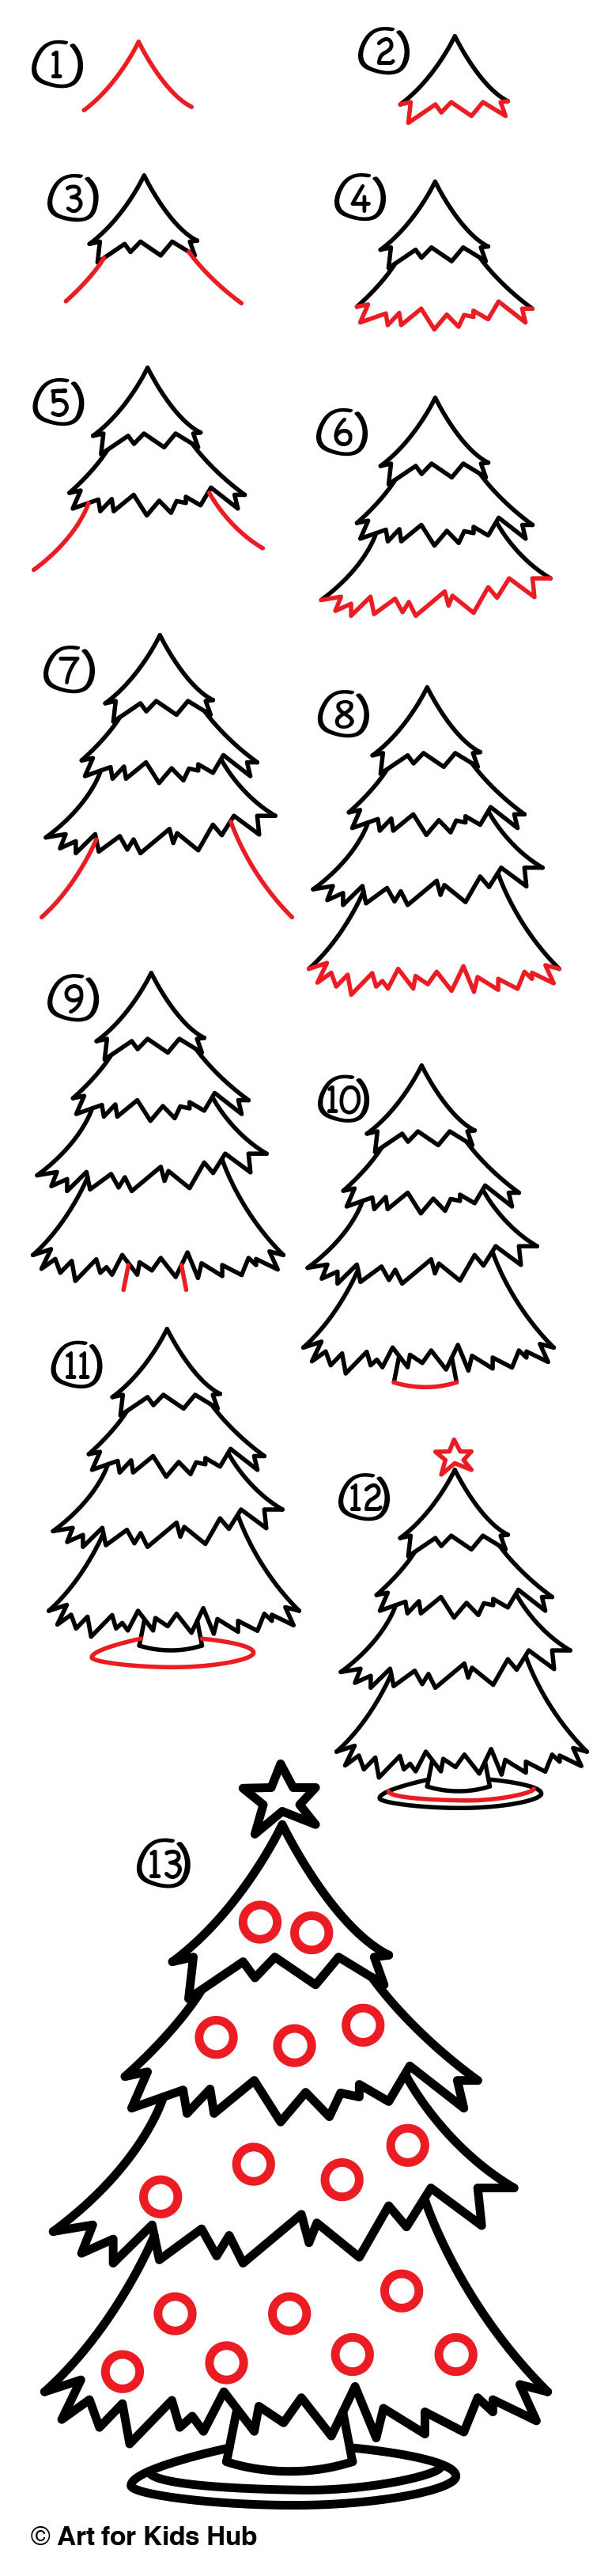 Christmas Pictures To Draw.How To Draw A Christmas Tree Art For Kids Hub